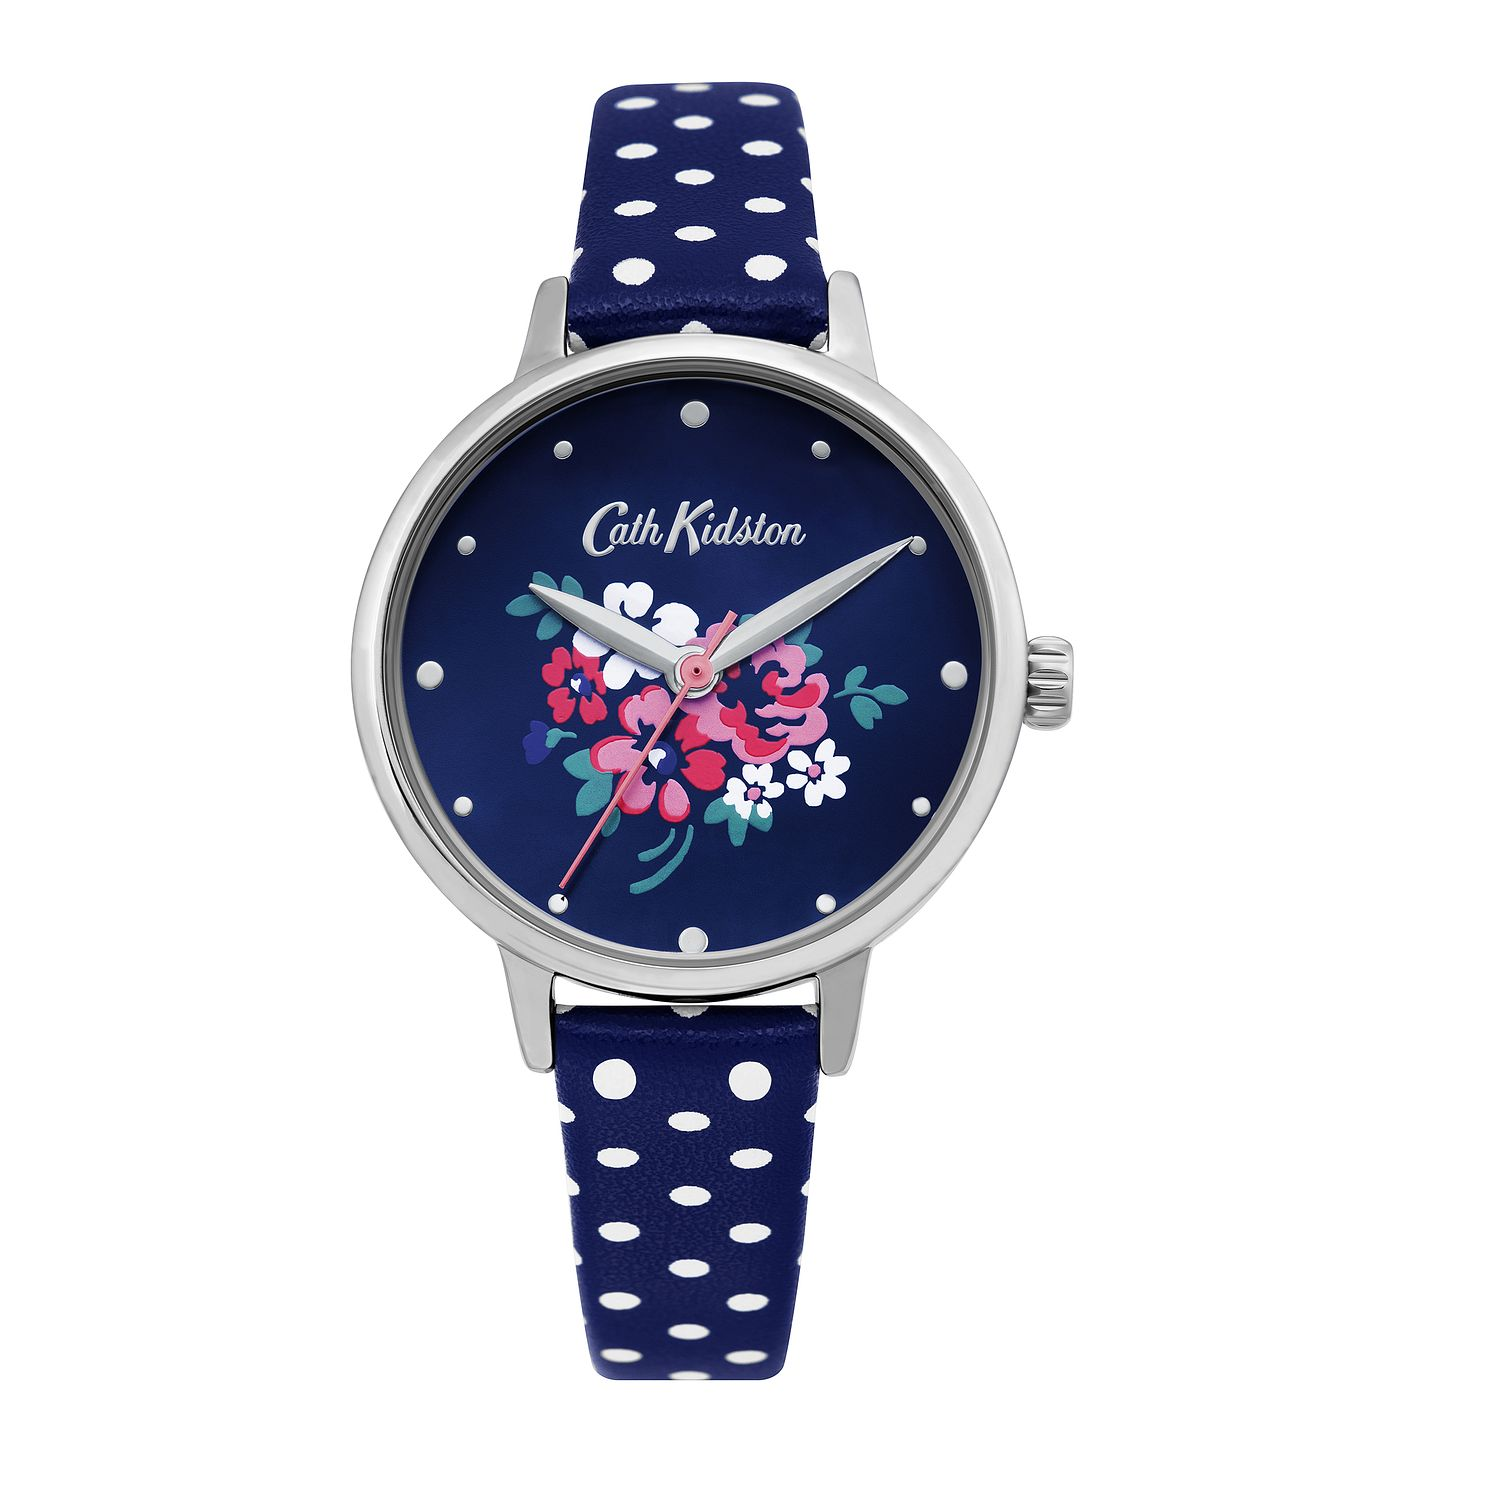 Cath Kidston Lucky Bunch Ladies' Blue PU Strap Watch - Product number 4095294